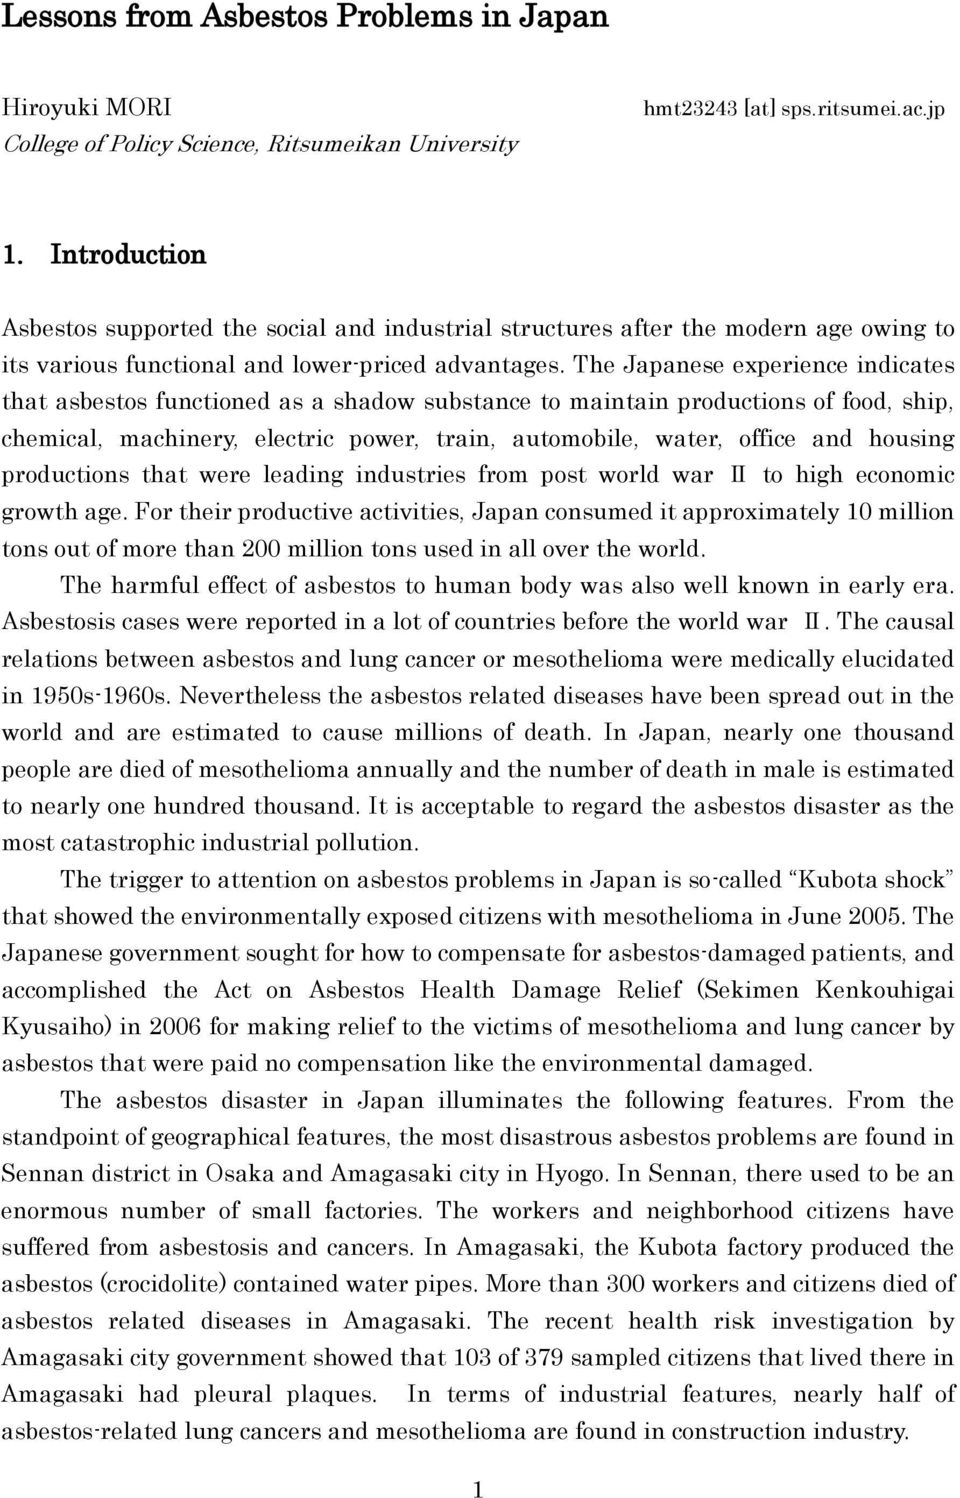 The Japanese experience indicates that asbestos functioned as a shadow substance to maintain productions of food, ship, chemical, machinery, electric power, train, automobile, water, office and